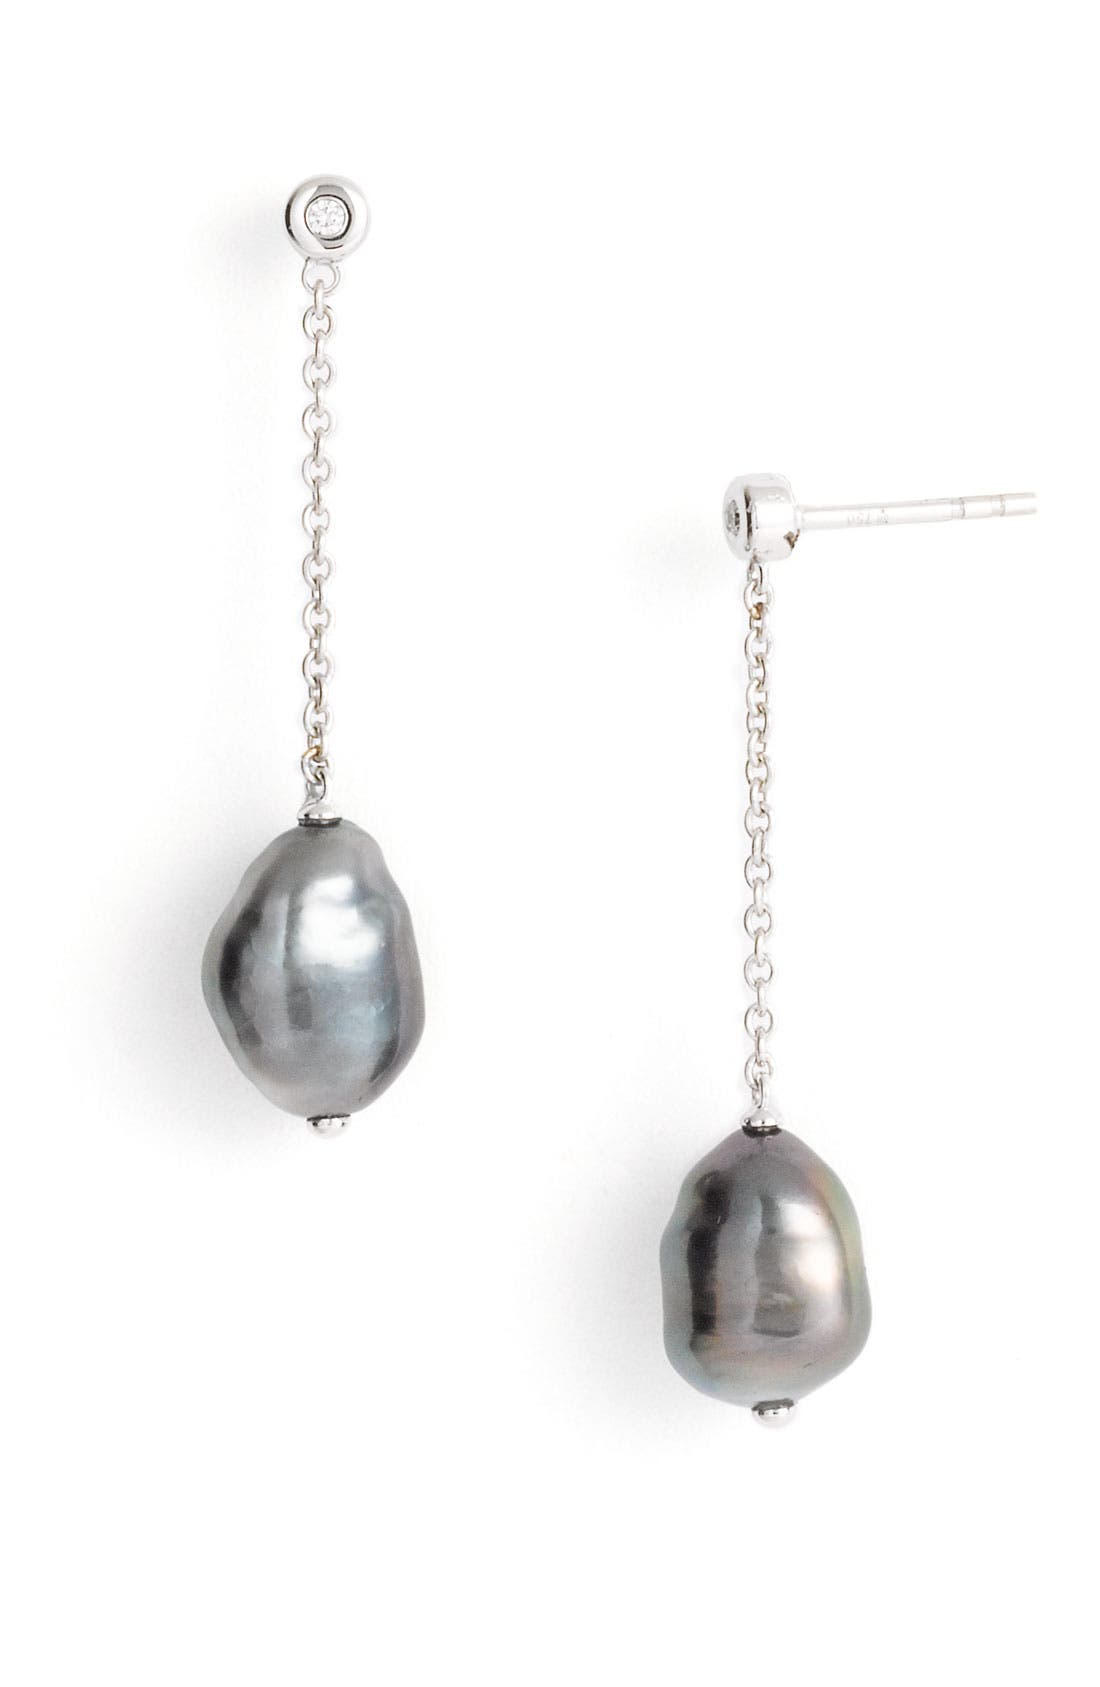 Alternate Image 1 Selected - Mikimoto 'Baroque' Black South Sea Cultured Pearl & Diamond Earrings